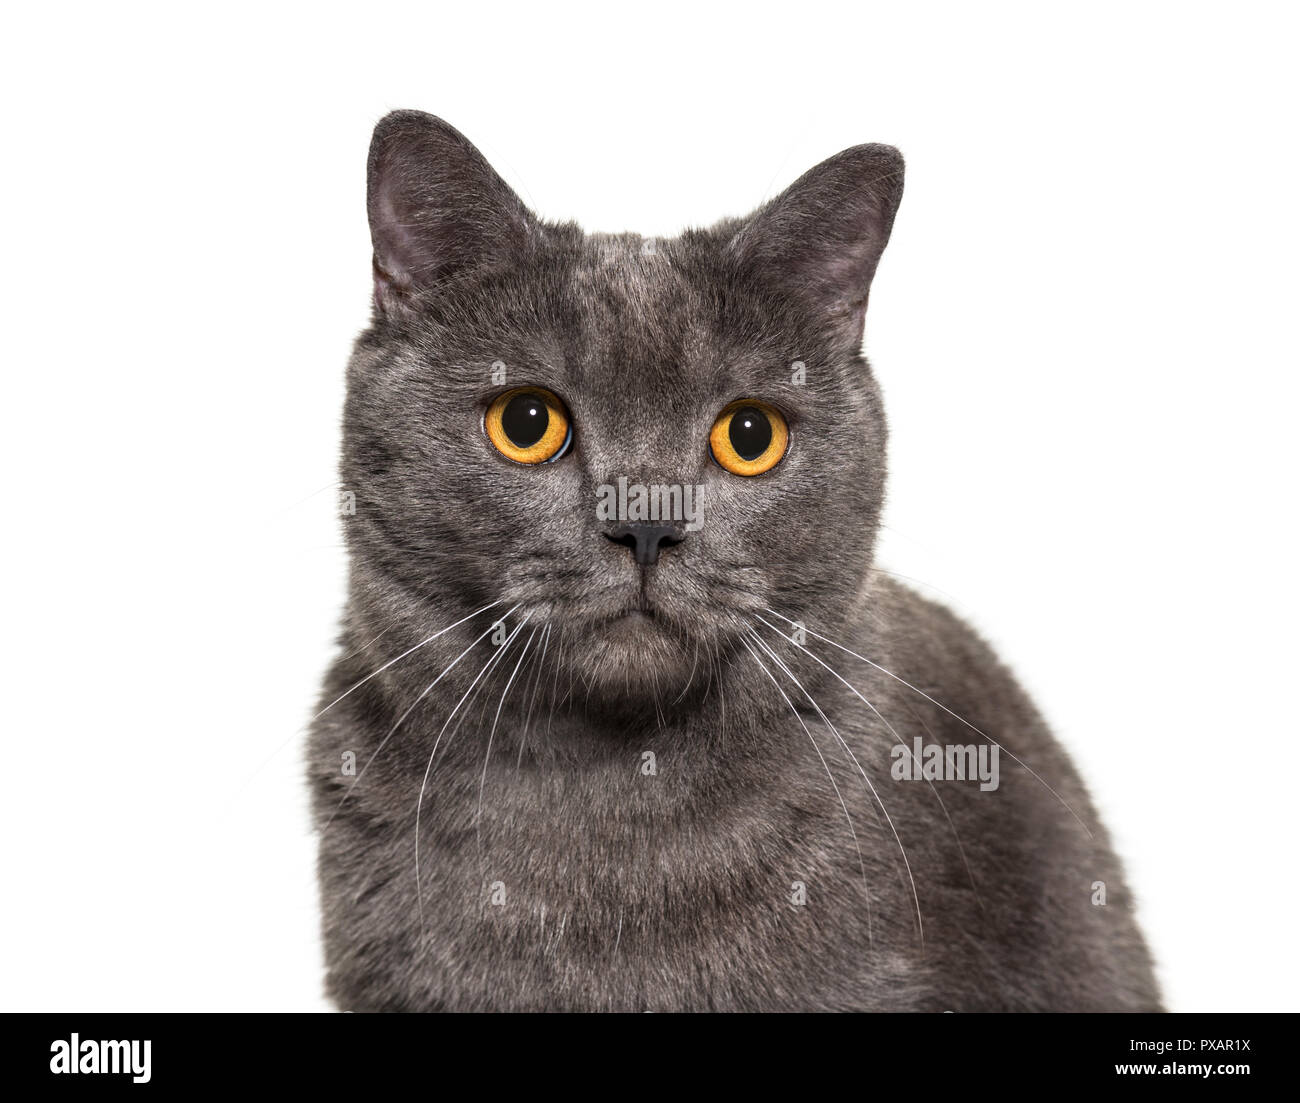 British Shorthair, 4 years old, in front of white background - Stock Image